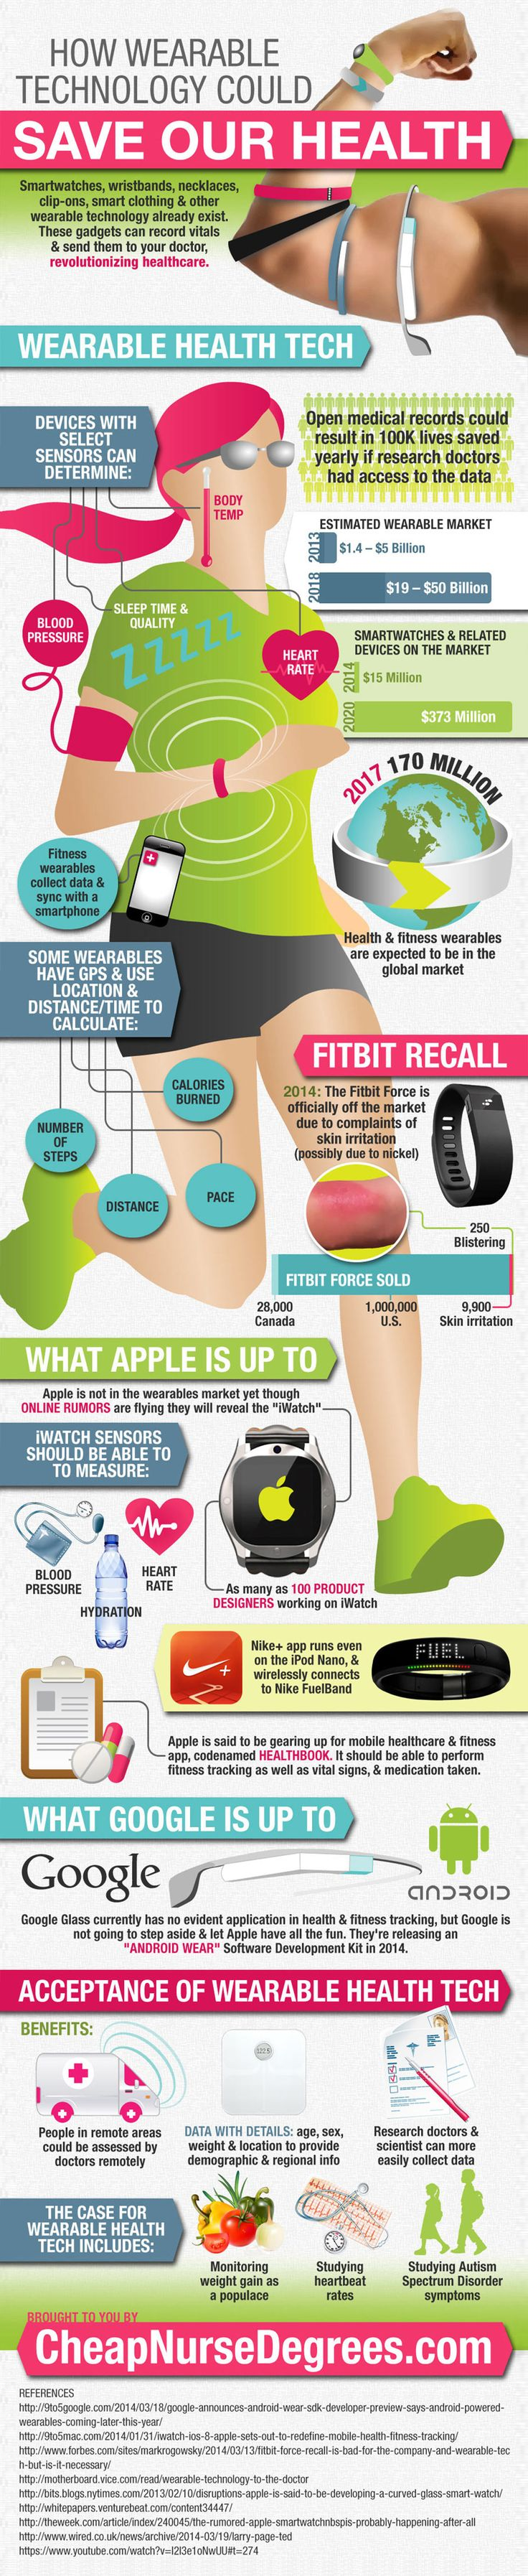 How Wearable Technology is Revolutionizing Healthcare Infographic. Topic: wearables, fitbit, google glass, activity tracker, iwatch, exercise, jogging, health gadgets.